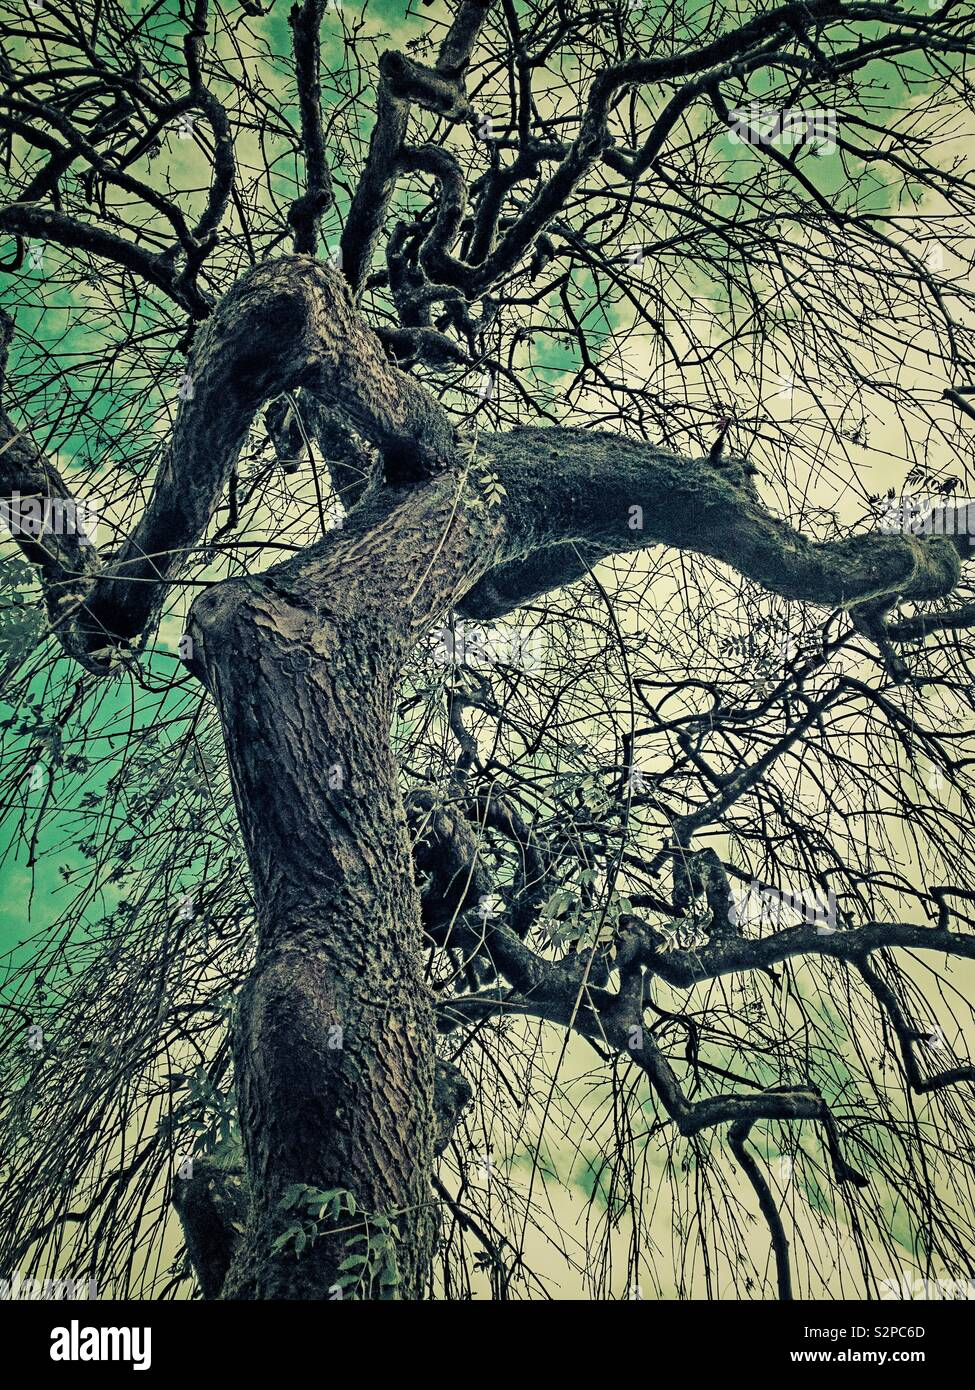 Gnarled trunk and branches of a weeping willow tree in winter. Stock Photo